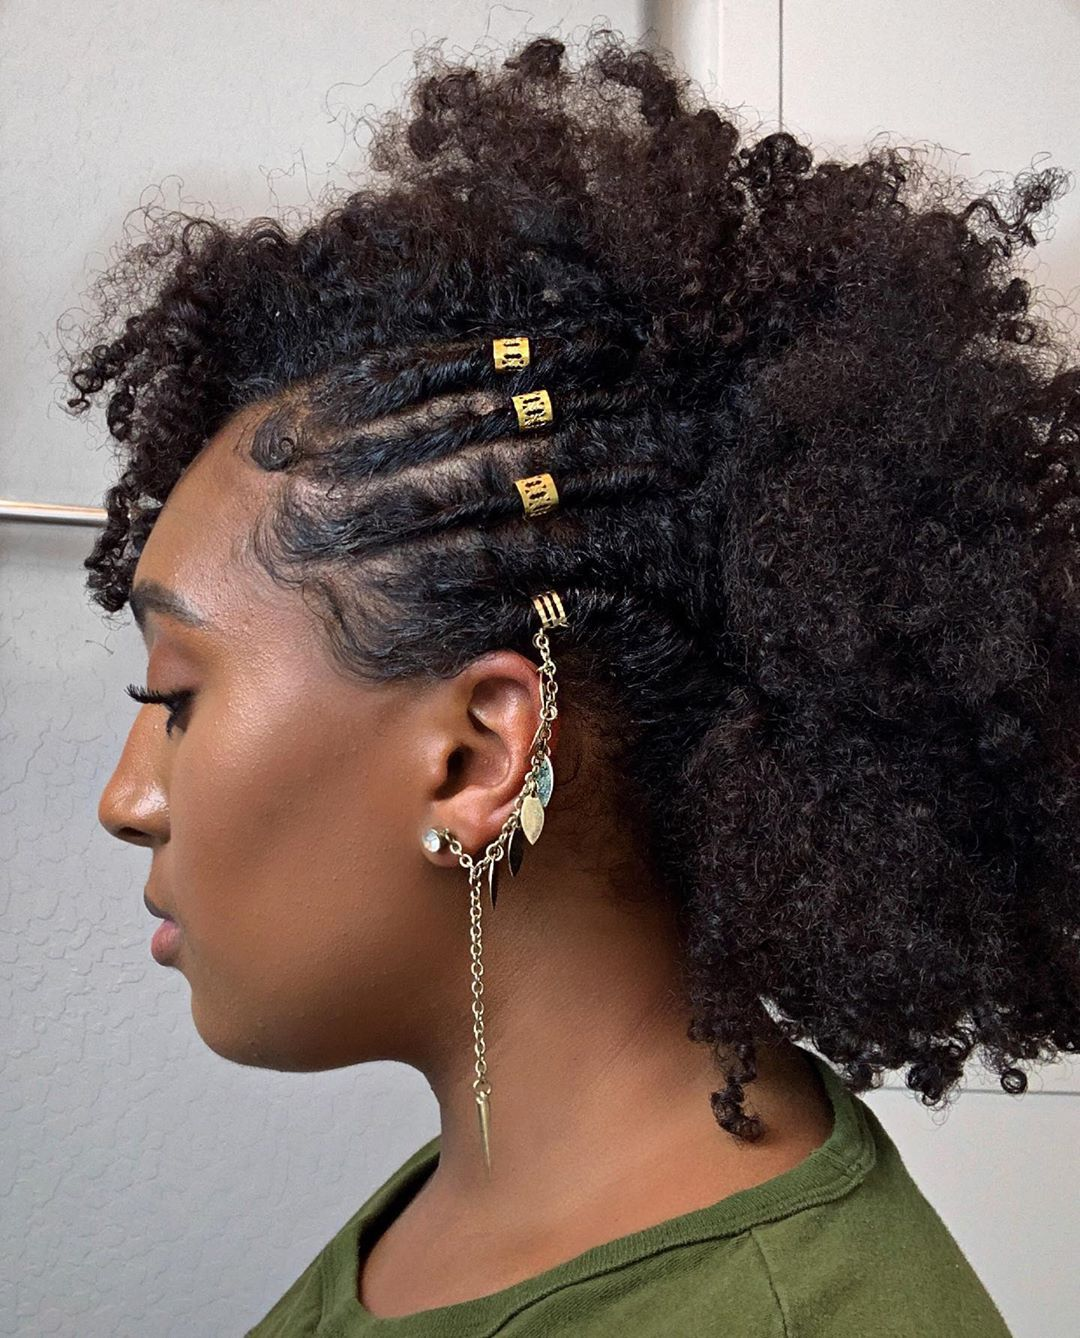 Curly Craze Crazy Hairstyles For African Americans Short Hair Styles Easy Short Hair Styles Short Hair Updo